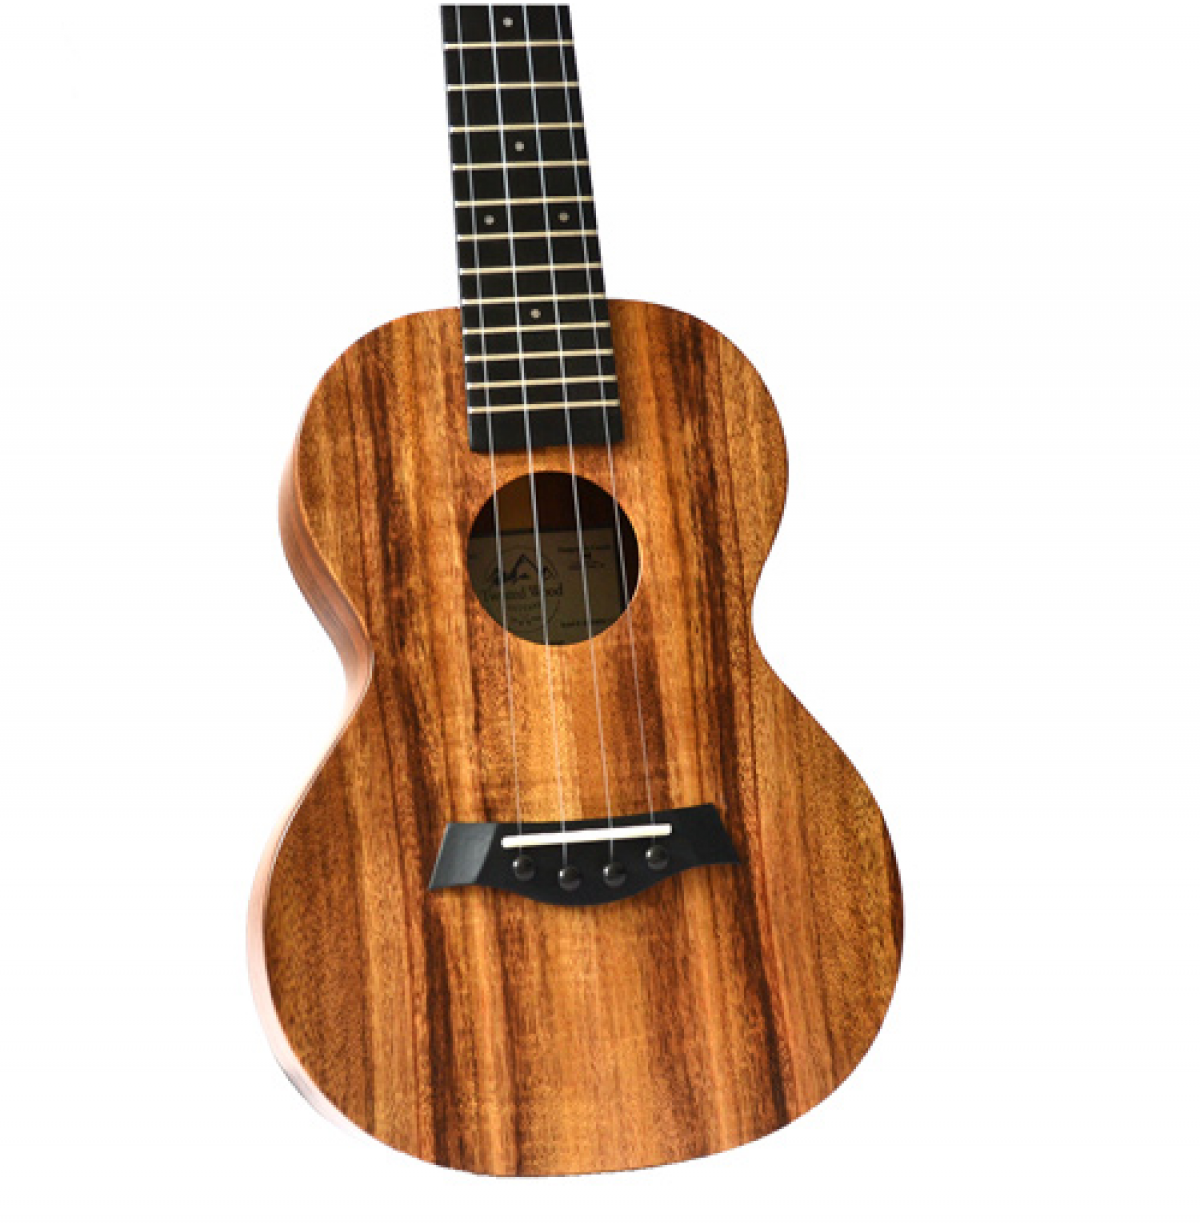 Twisted Wood Koa Ukulele - KO1000 zoom